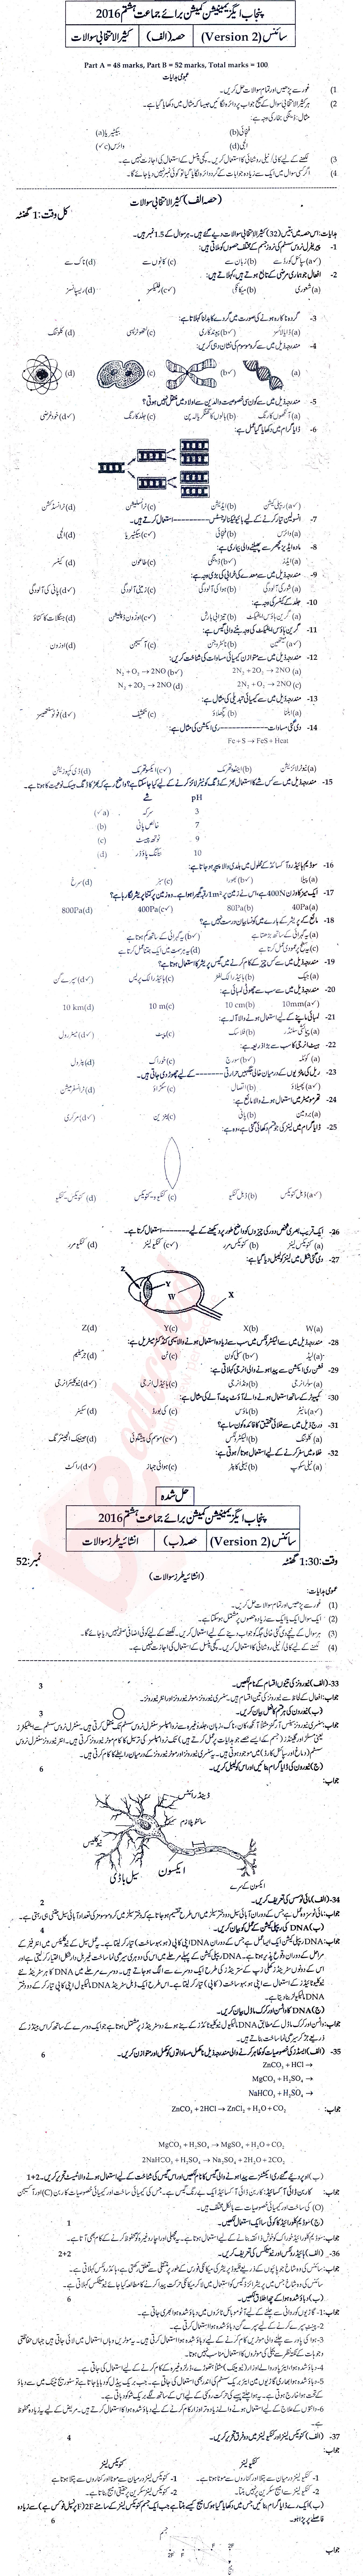 Essay on morning walk for class 8 in urdu